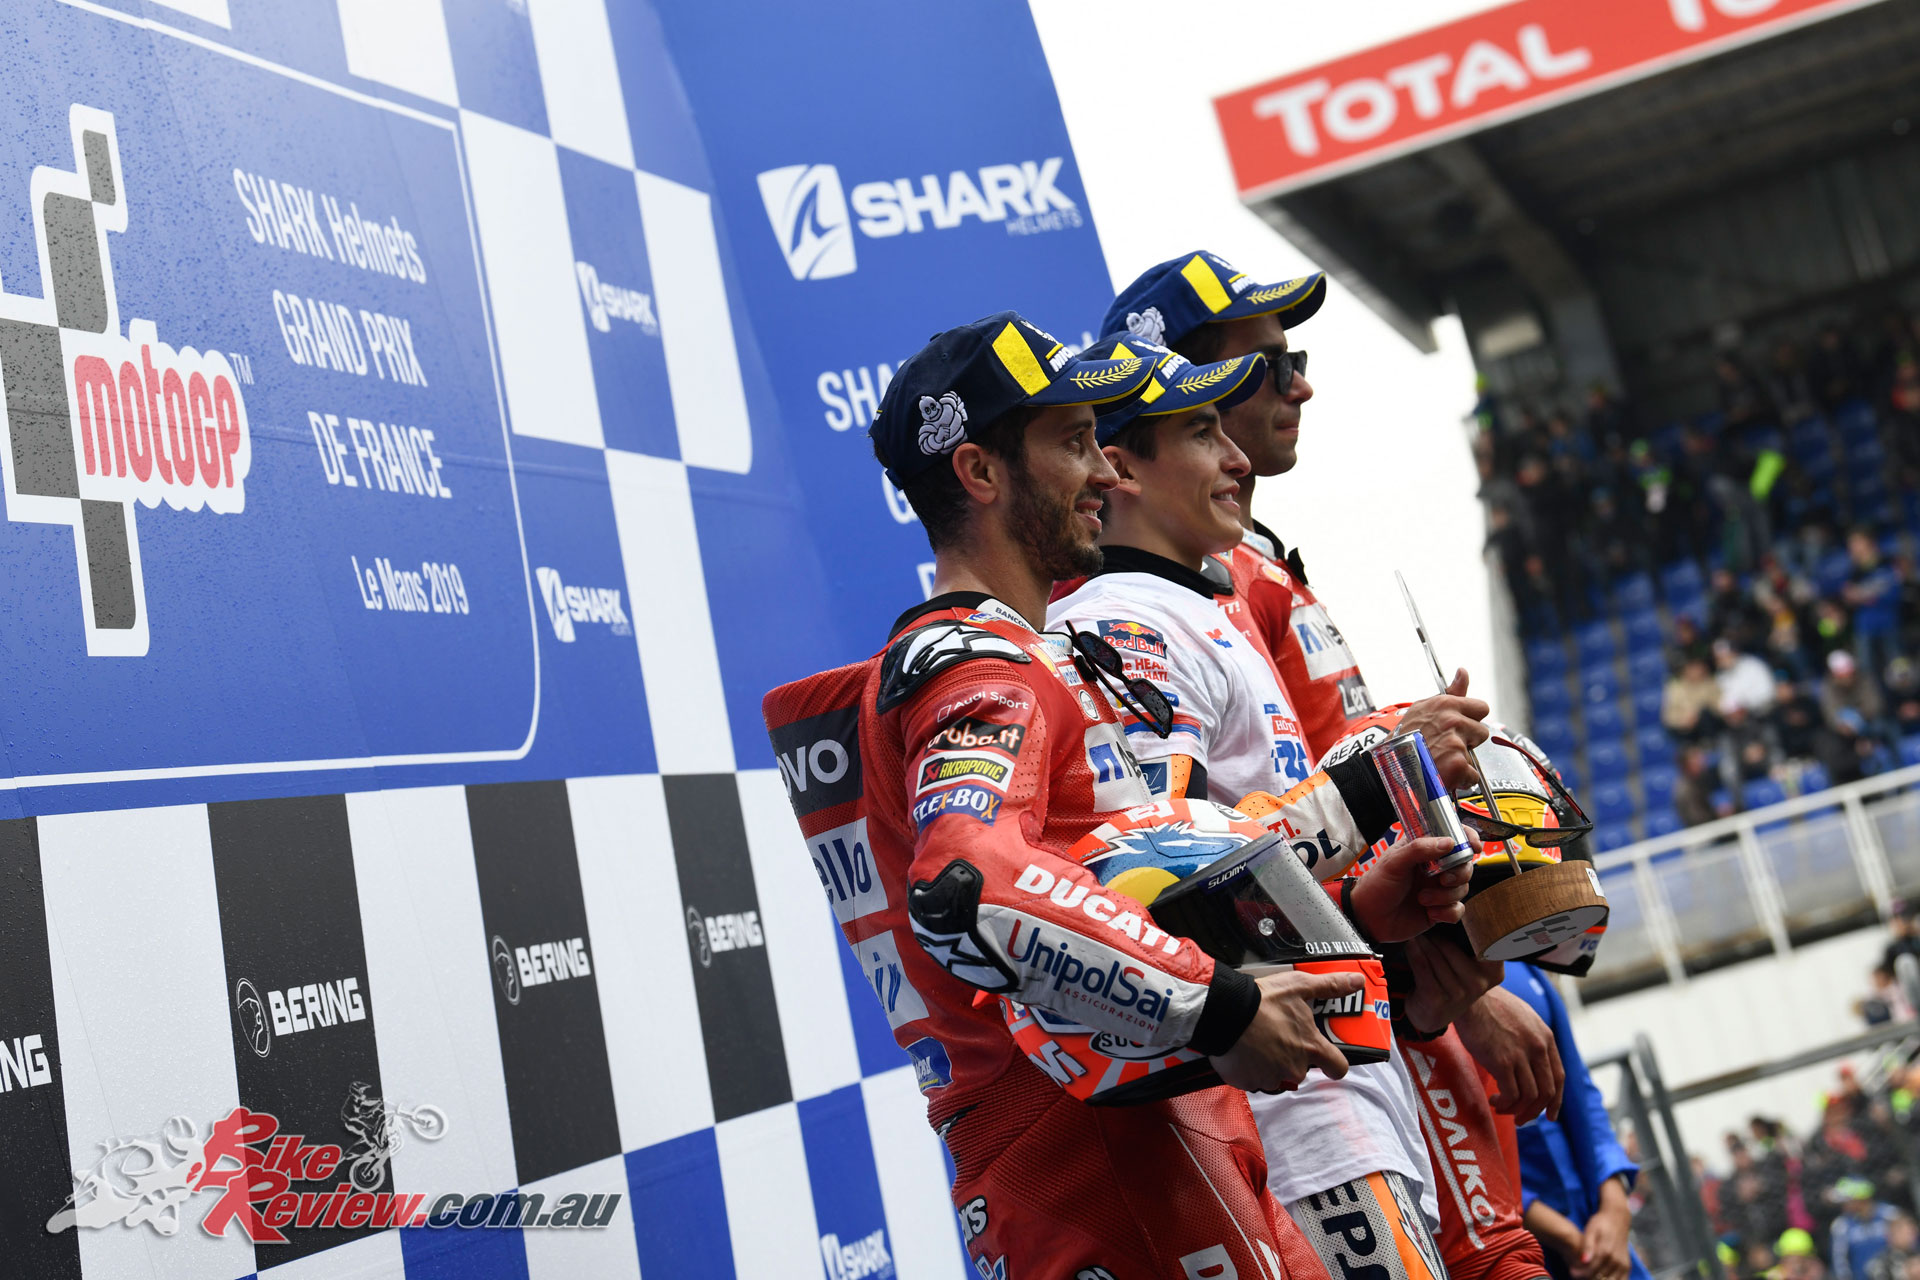 French MotoGP 2019 Podium